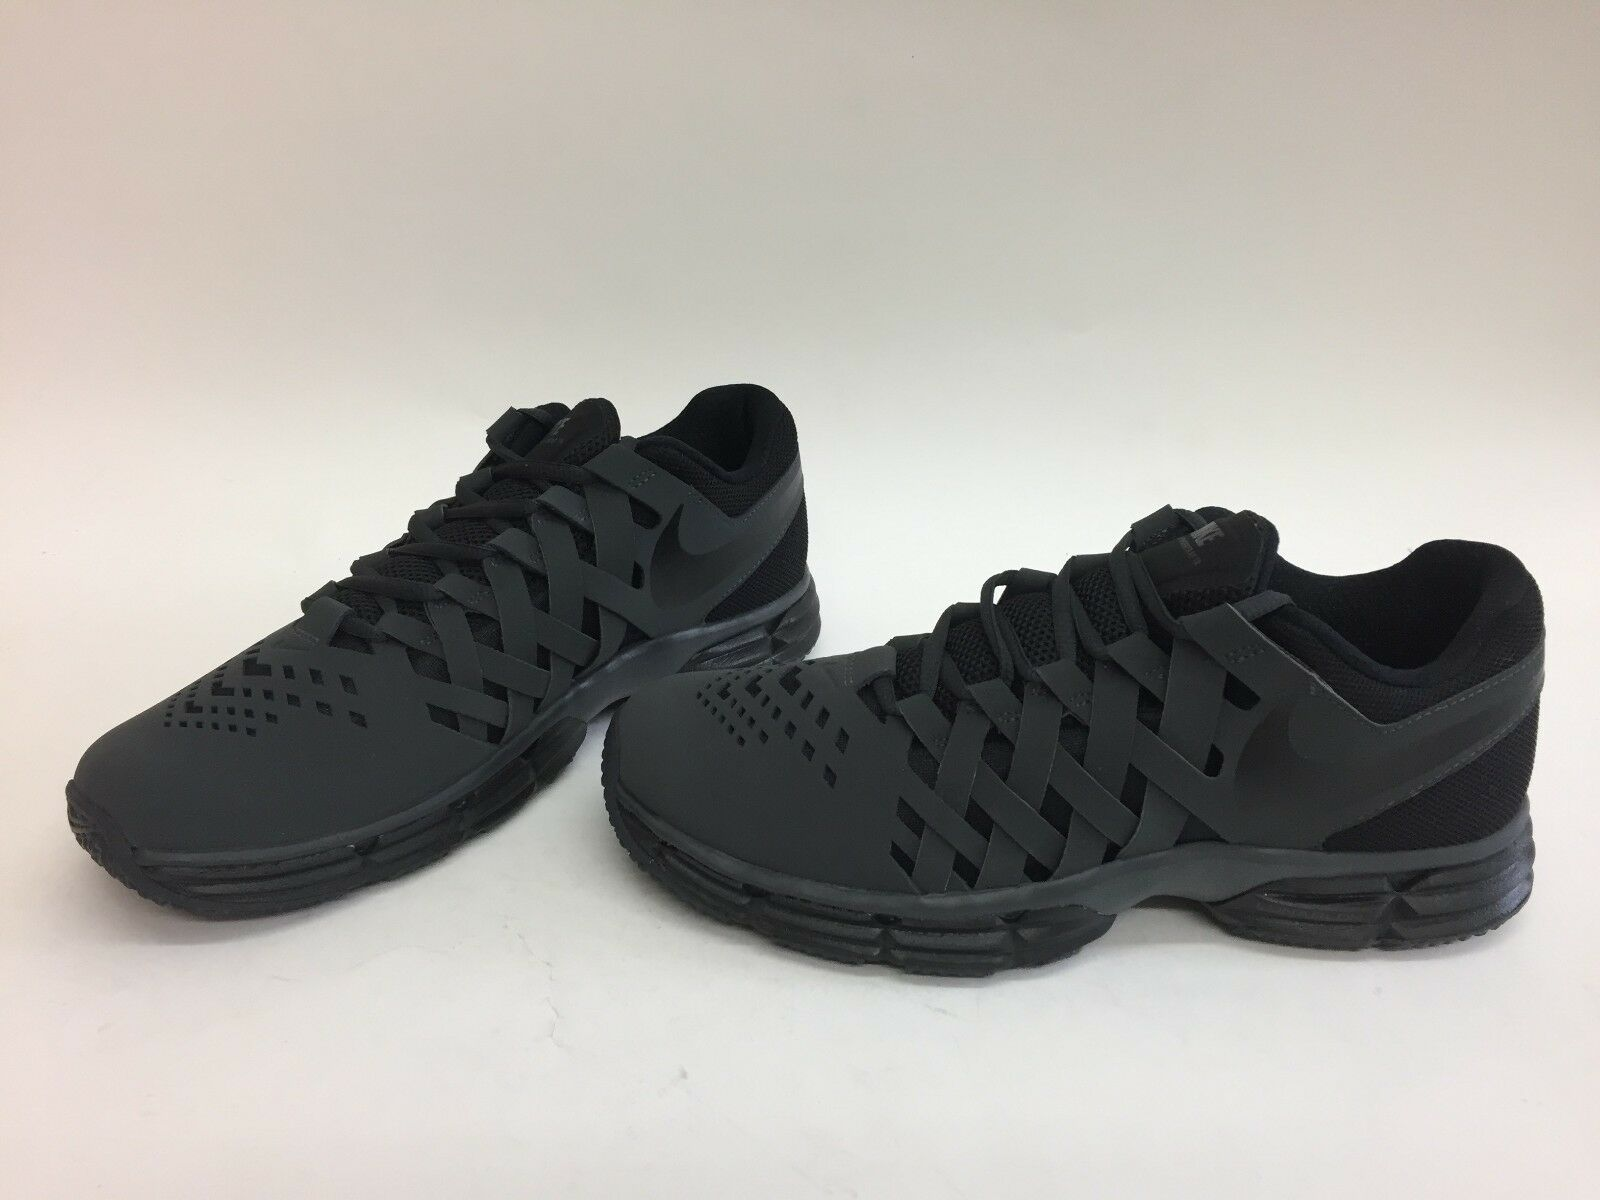 NIB MENS SIZE 10 NIKE LUNAR FINGERTRAP TRAINING SNEAKERS ANTHRACITE 898066-010